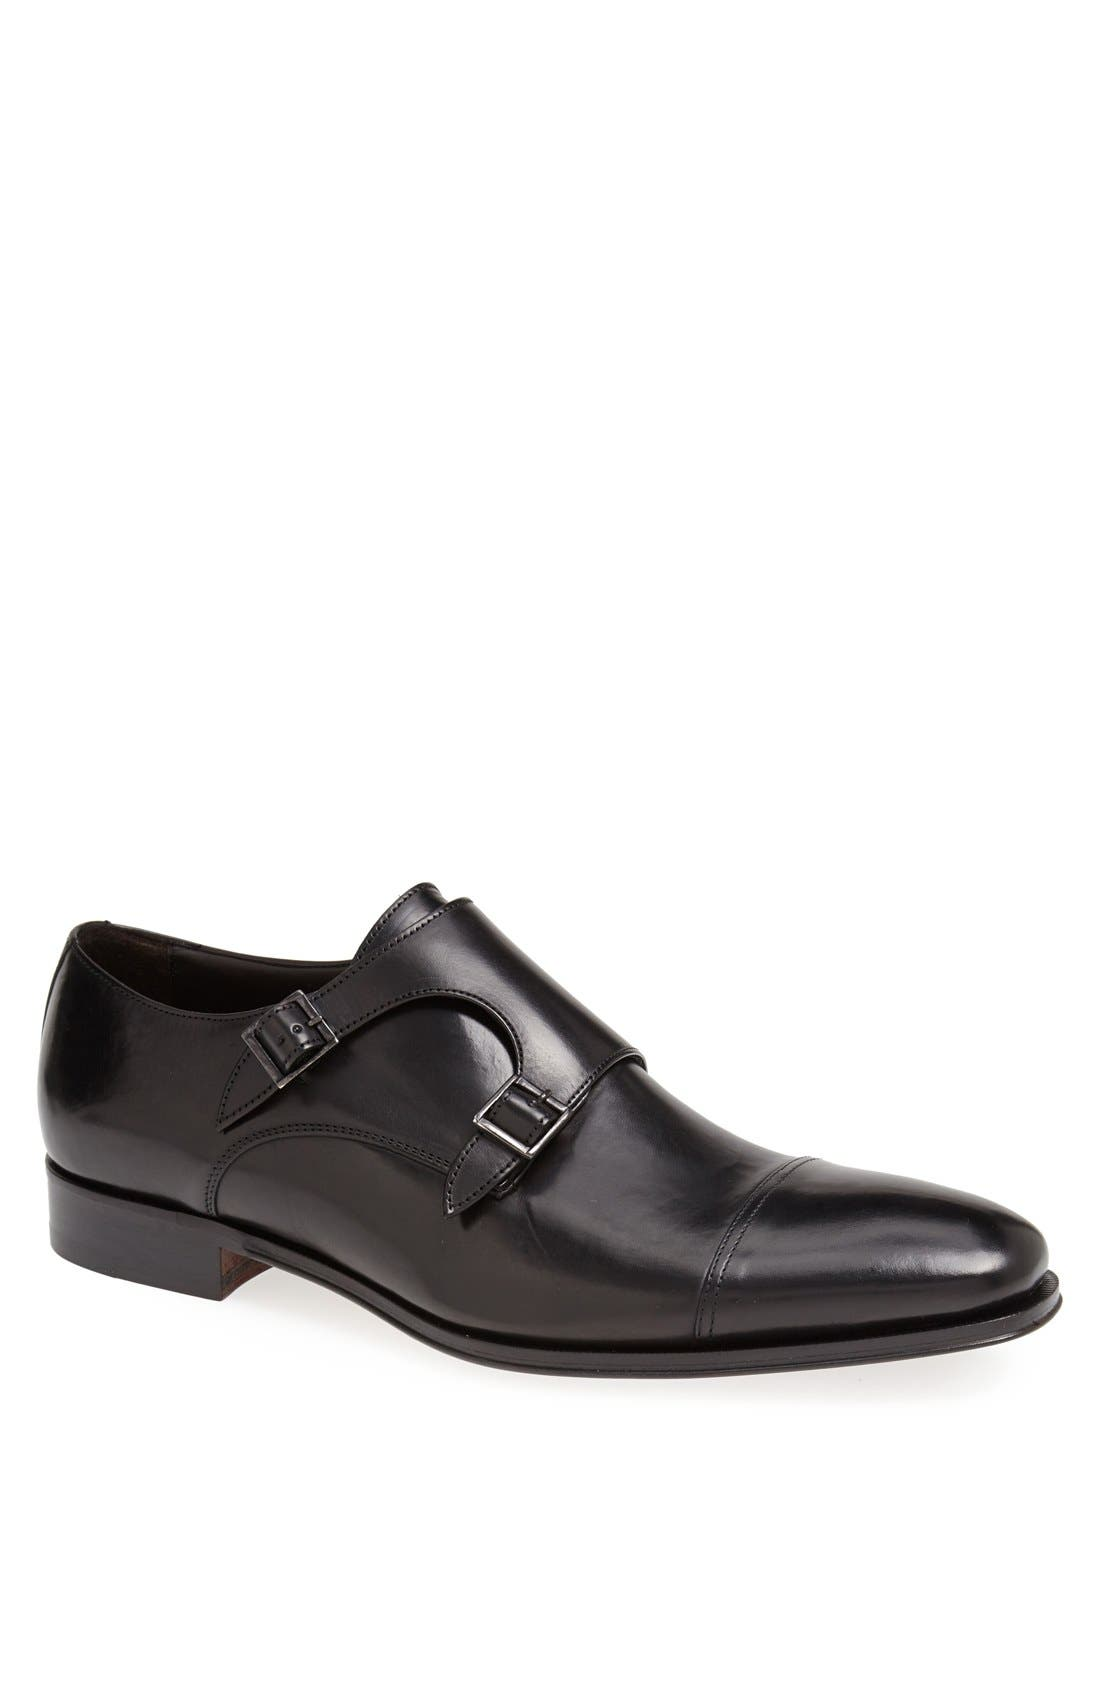 TO BOOT NEW YORK, 'Grant' Double Monk Shoe, Main thumbnail 1, color, BLACK CALFSKIN